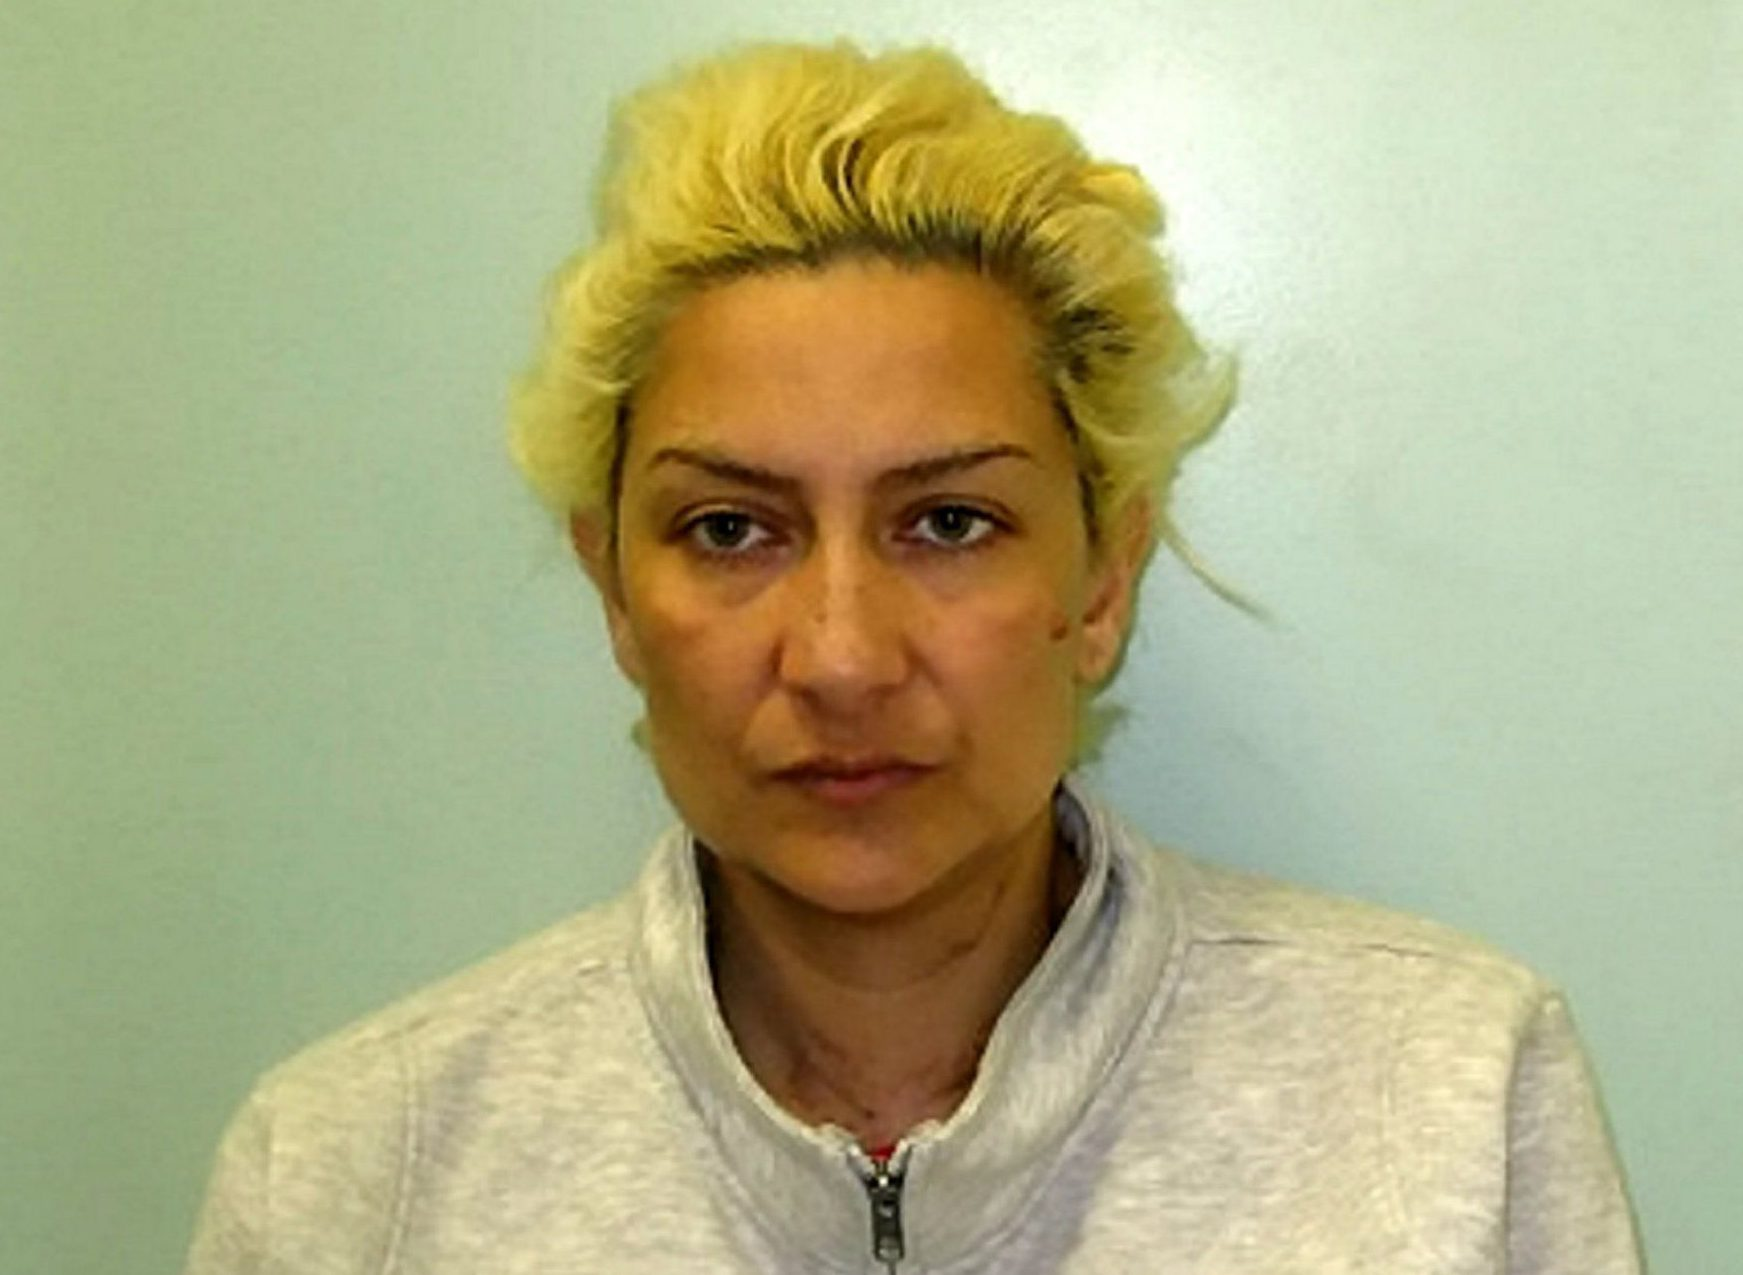 Gyuldzhan Hadzhieva. A woman has been sentenced to life imprisonment for murdering her partner at the home they shared in Haringey. See NATIONAL story NNPARTNER; Gyuldzhan Hadzhieva, 38 (23.03.78) of Northumberland Park, N17 was today, Monday 15 August, sentenced to life imprisonment to serve a minimum of 16 years' at Wood Green Crown Court. She was found guilty at the same court on Friday, 12 August of the murder of 32-year-old Shenol Erol Ali at their home on Northumberland Park, N17. The court heard that police were called at 11:30hrs on Wednesday, 3 February by the London Ambulance Service to reports of an injured man and woman at a residential address. The man - later identified as Shenol - was pronounced dead the scene. A post-mortem examination held at Haringey Mortuary gave cause of death as multiple stab wounds.